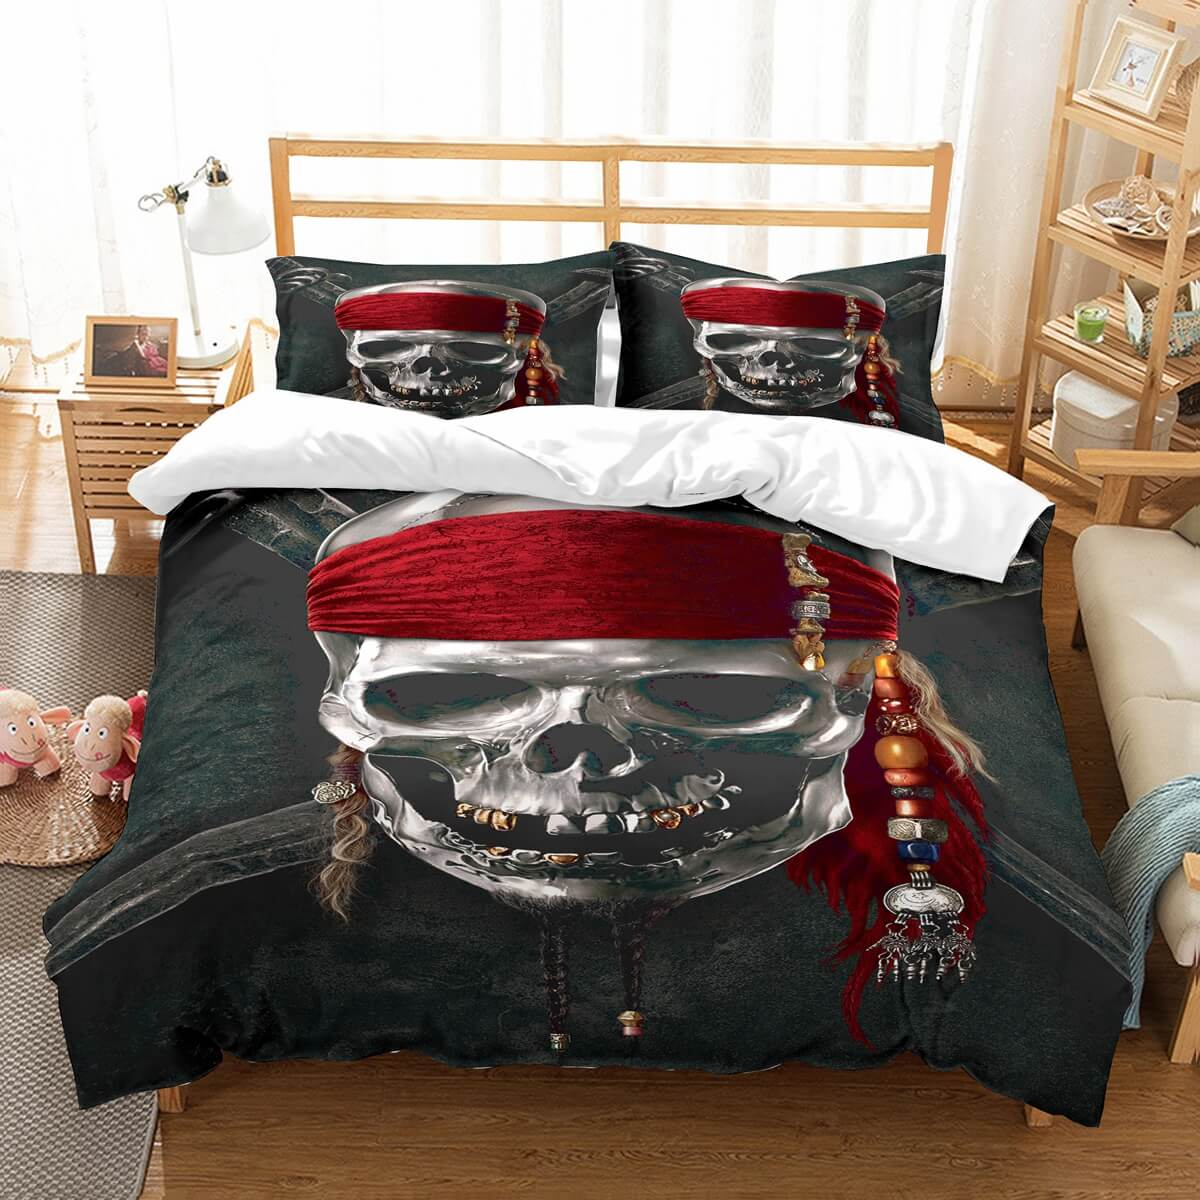 3D Customize Pirates Of The Caribbean Bedding Set Duvet Cover Set Bedroom Set Bedlinen